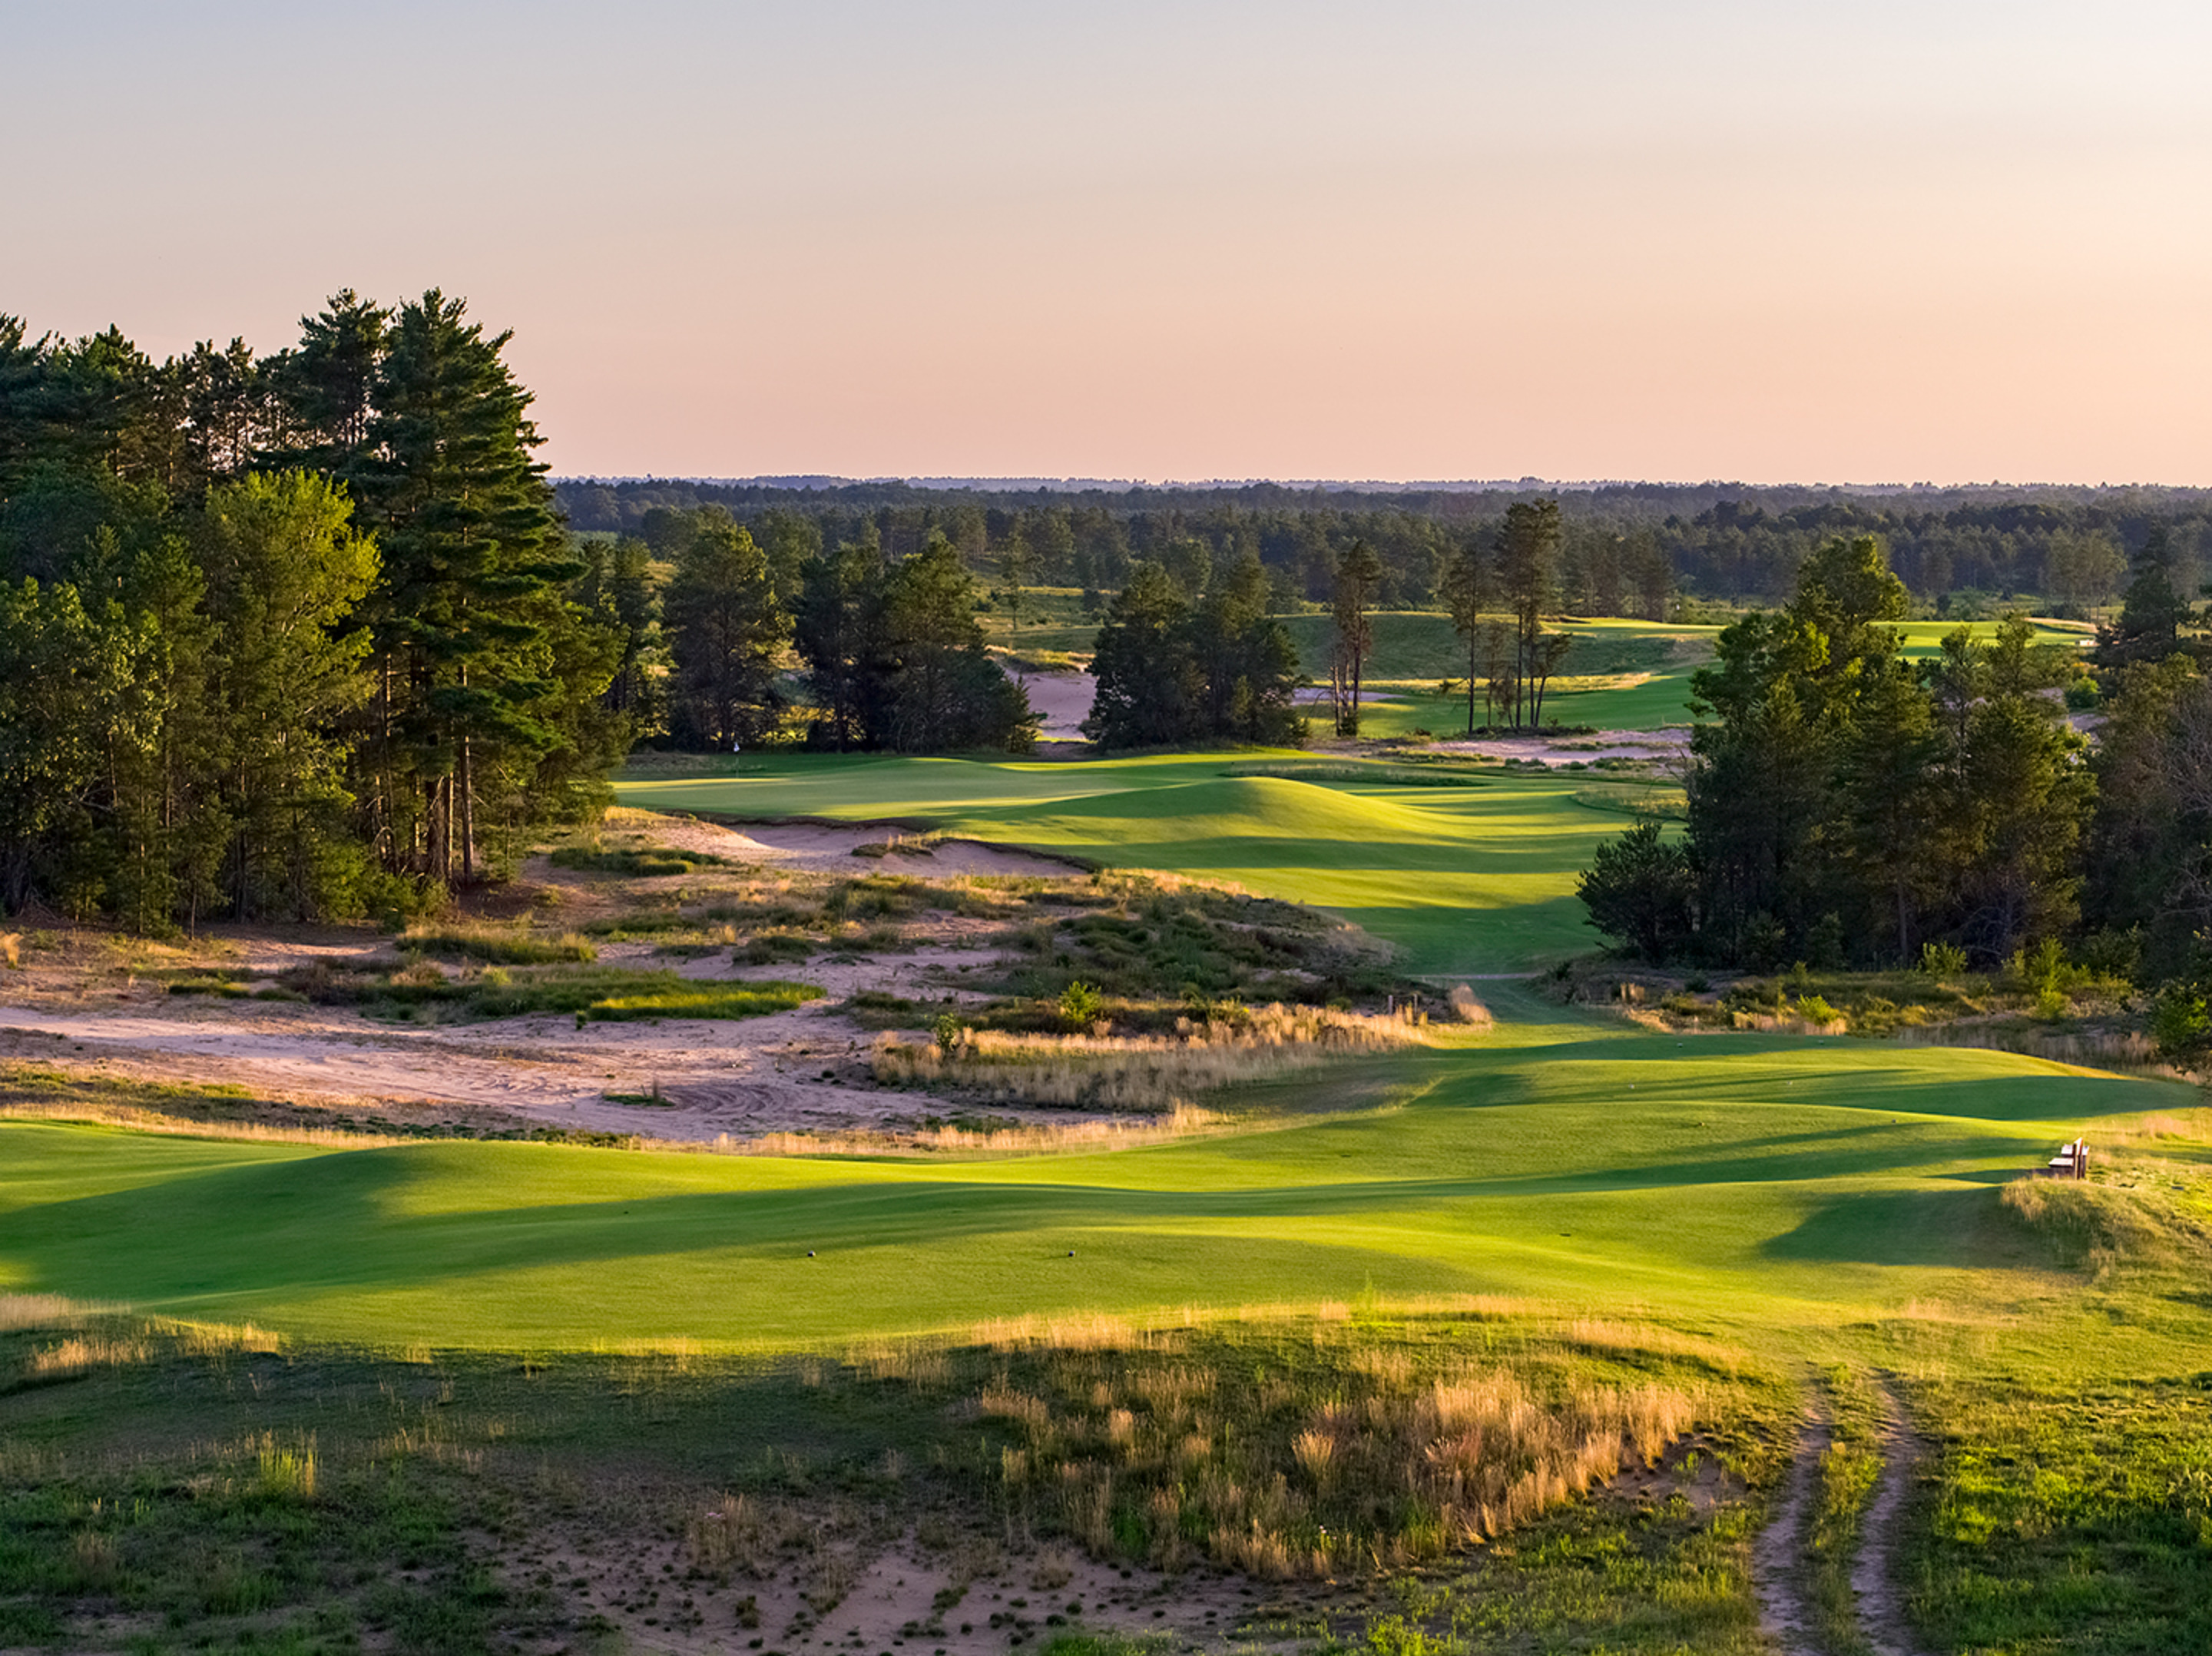 3rd Hole, Sand Valley